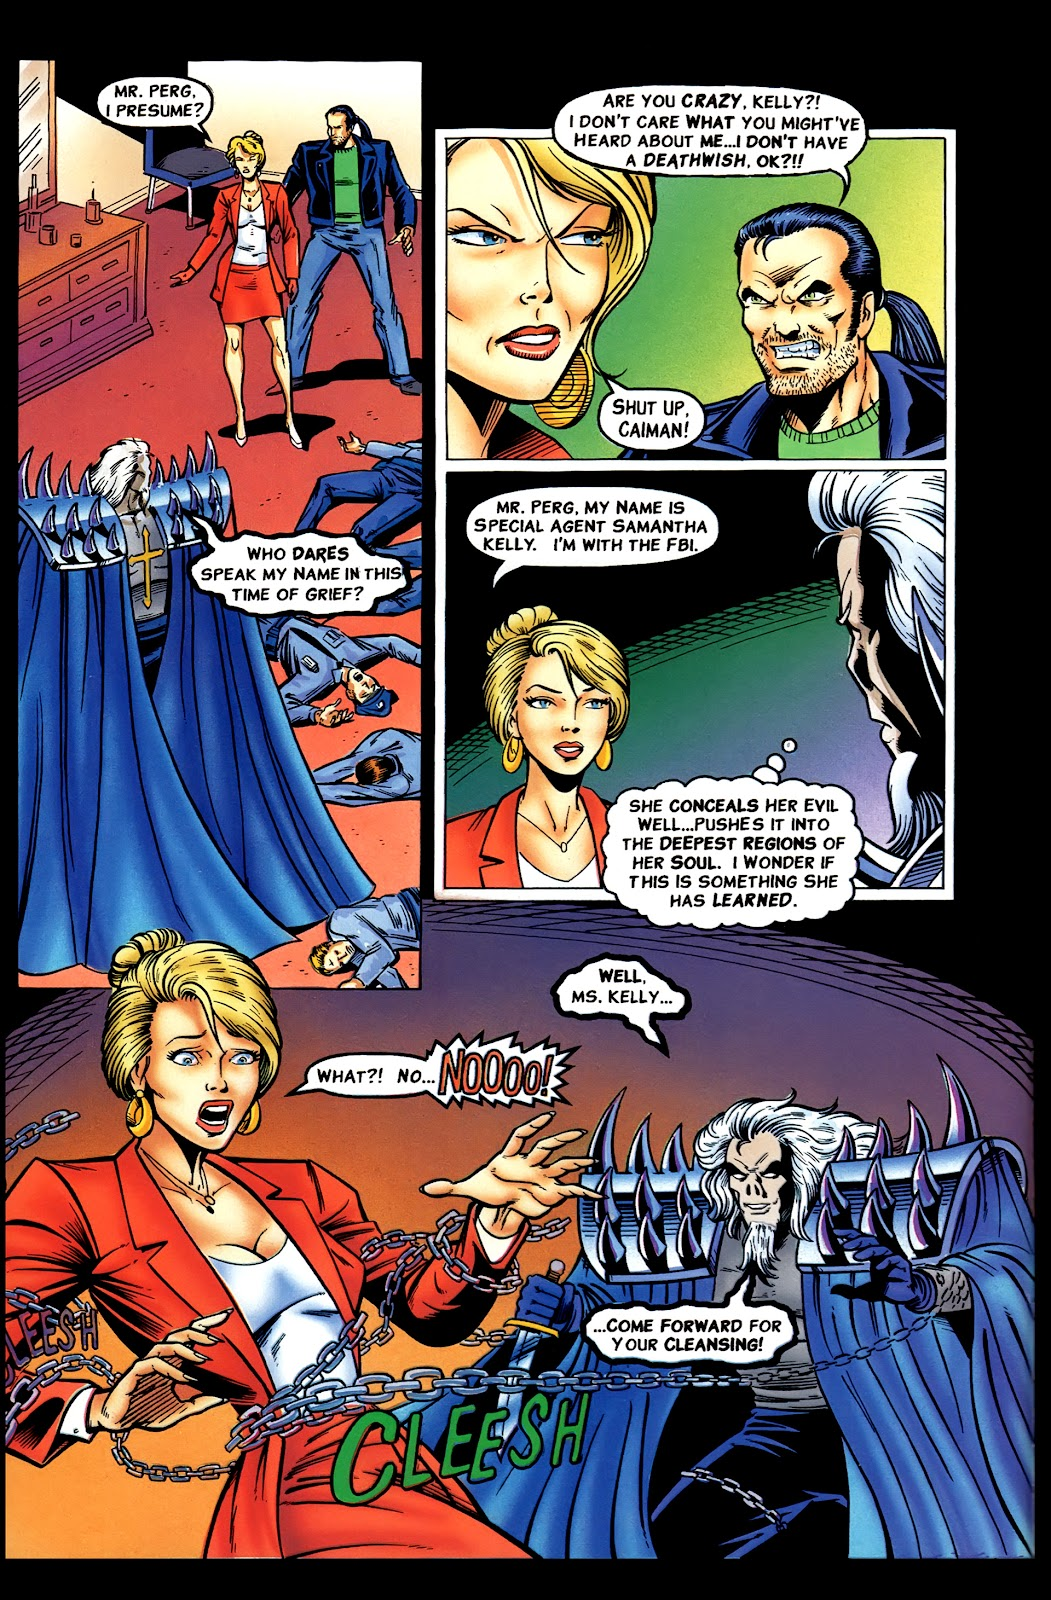 Read online Perg comic -  Issue #8 - 10